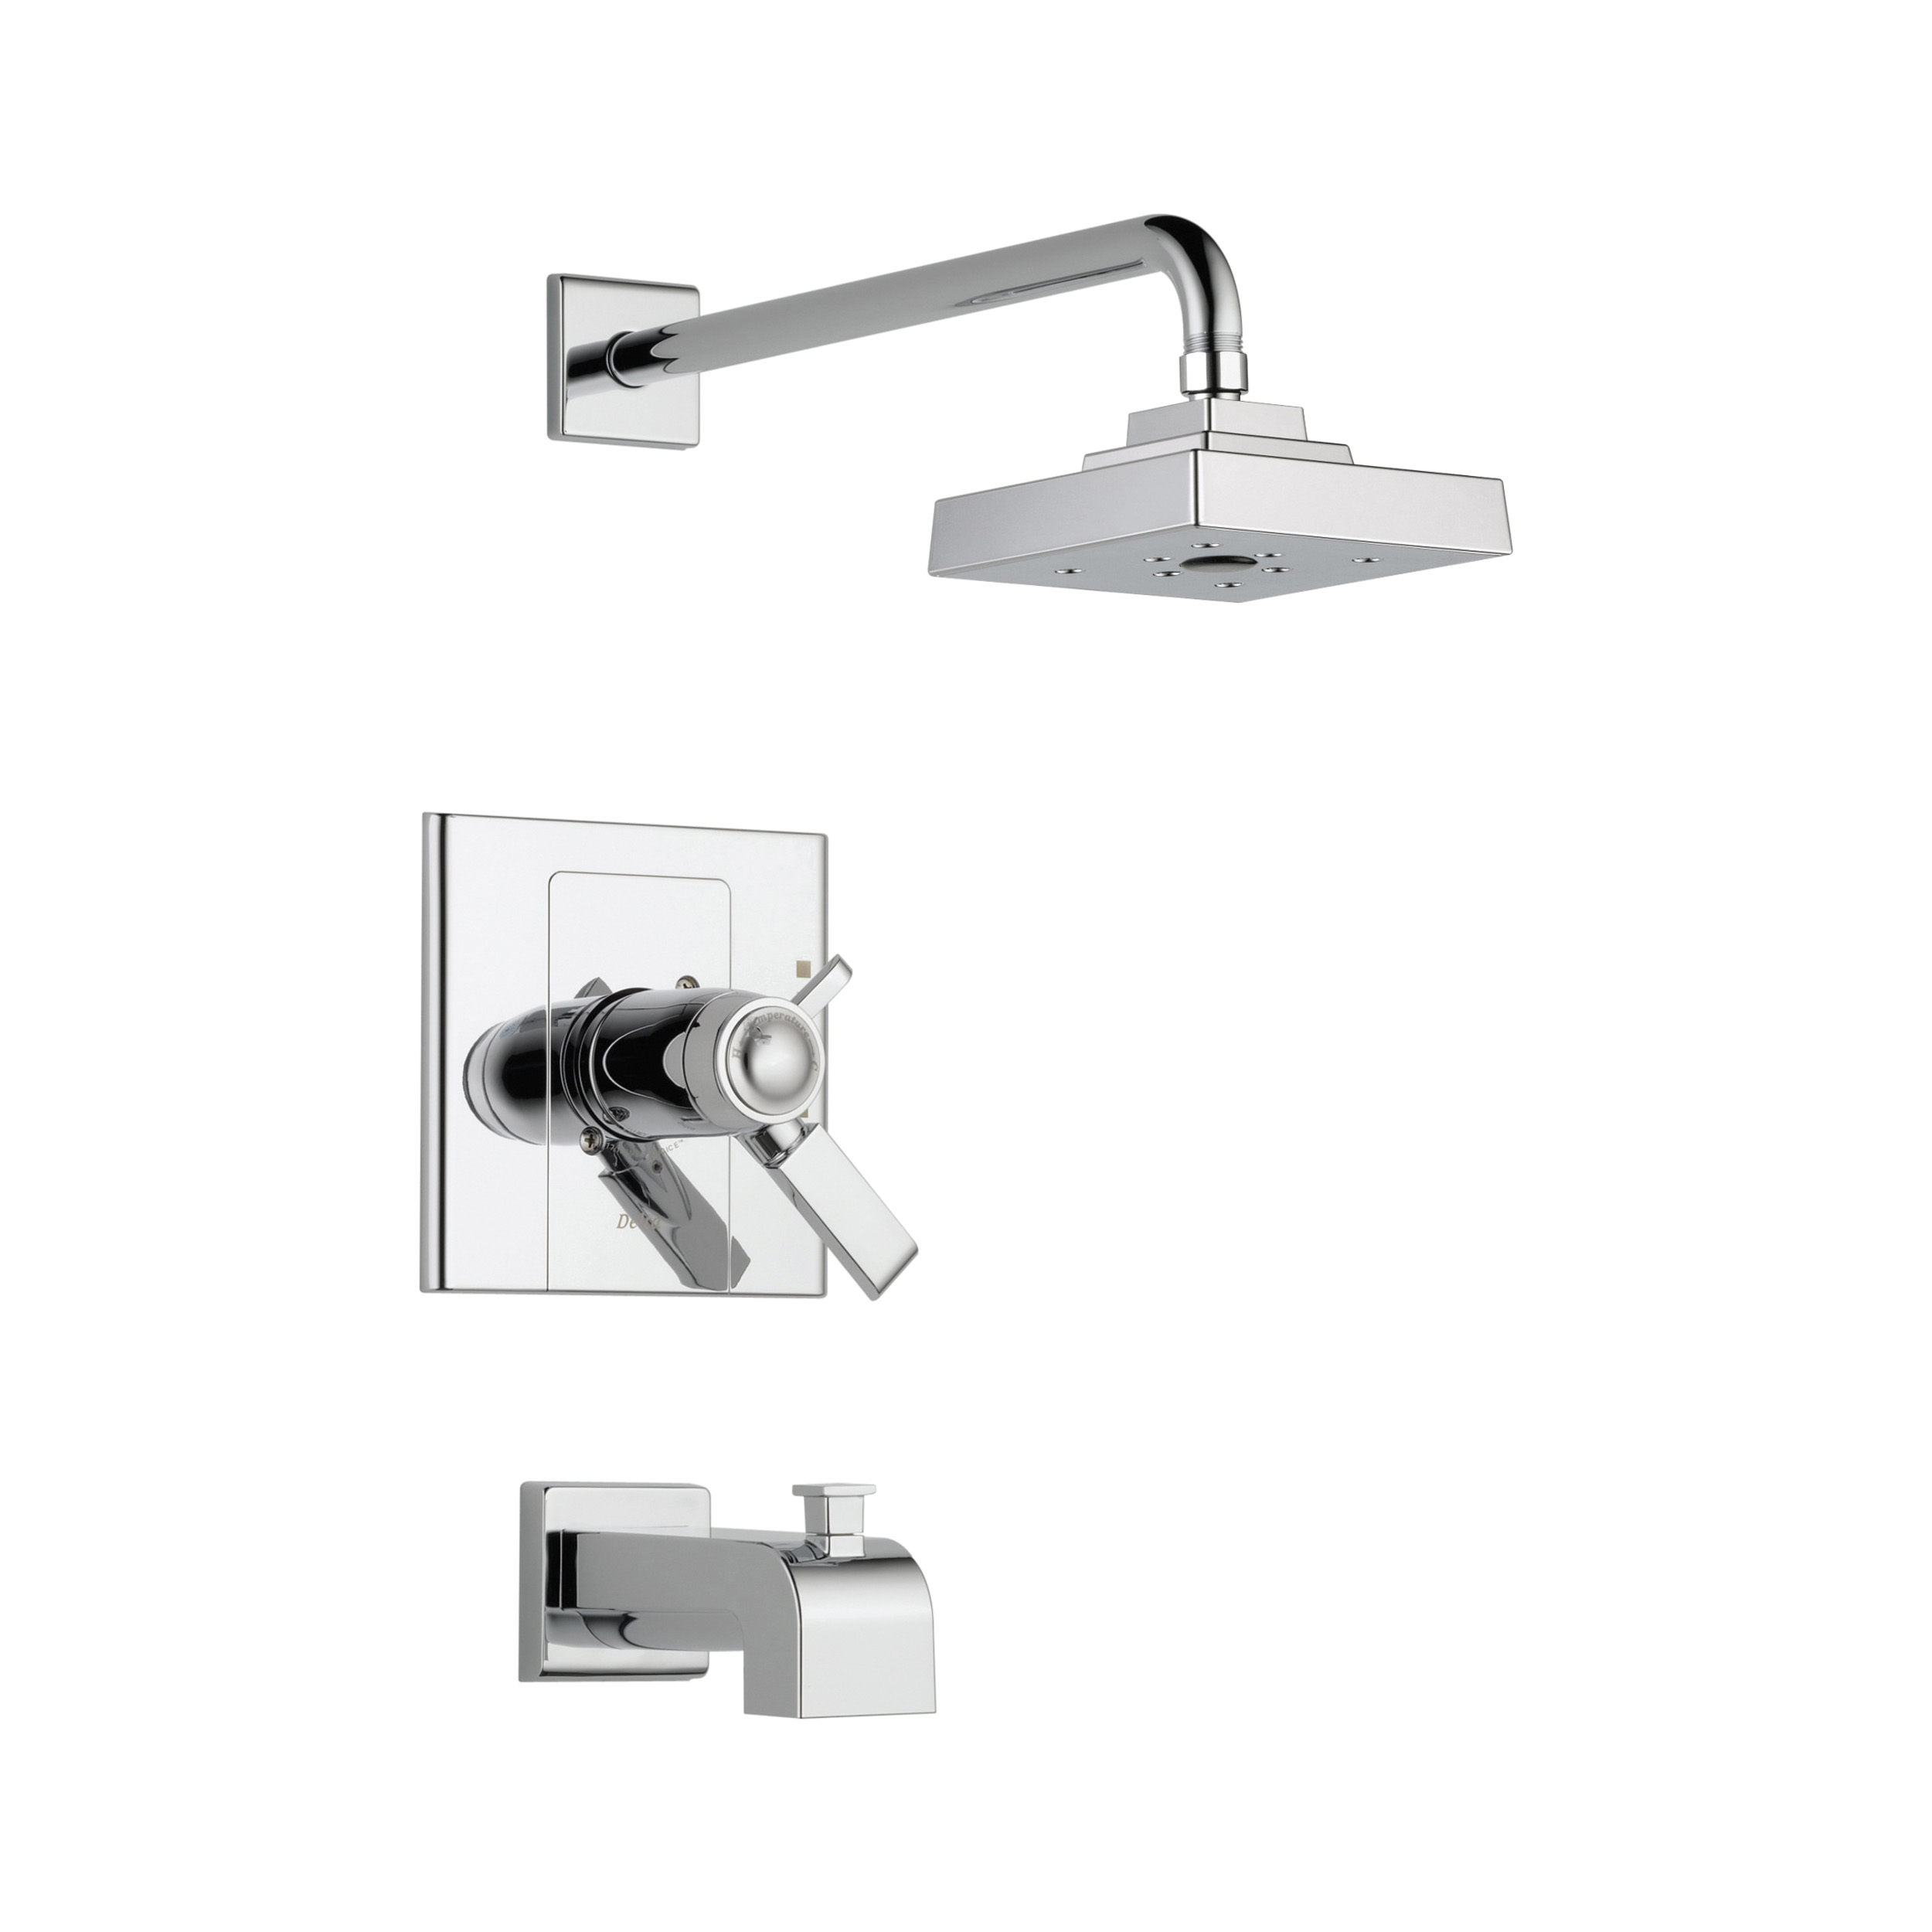 DELTA® T17T486 TempAssure® 17T Tub and Shower Trim, 2 gpm Shower, Hand Shower Yes/No: No, Chrome Plated